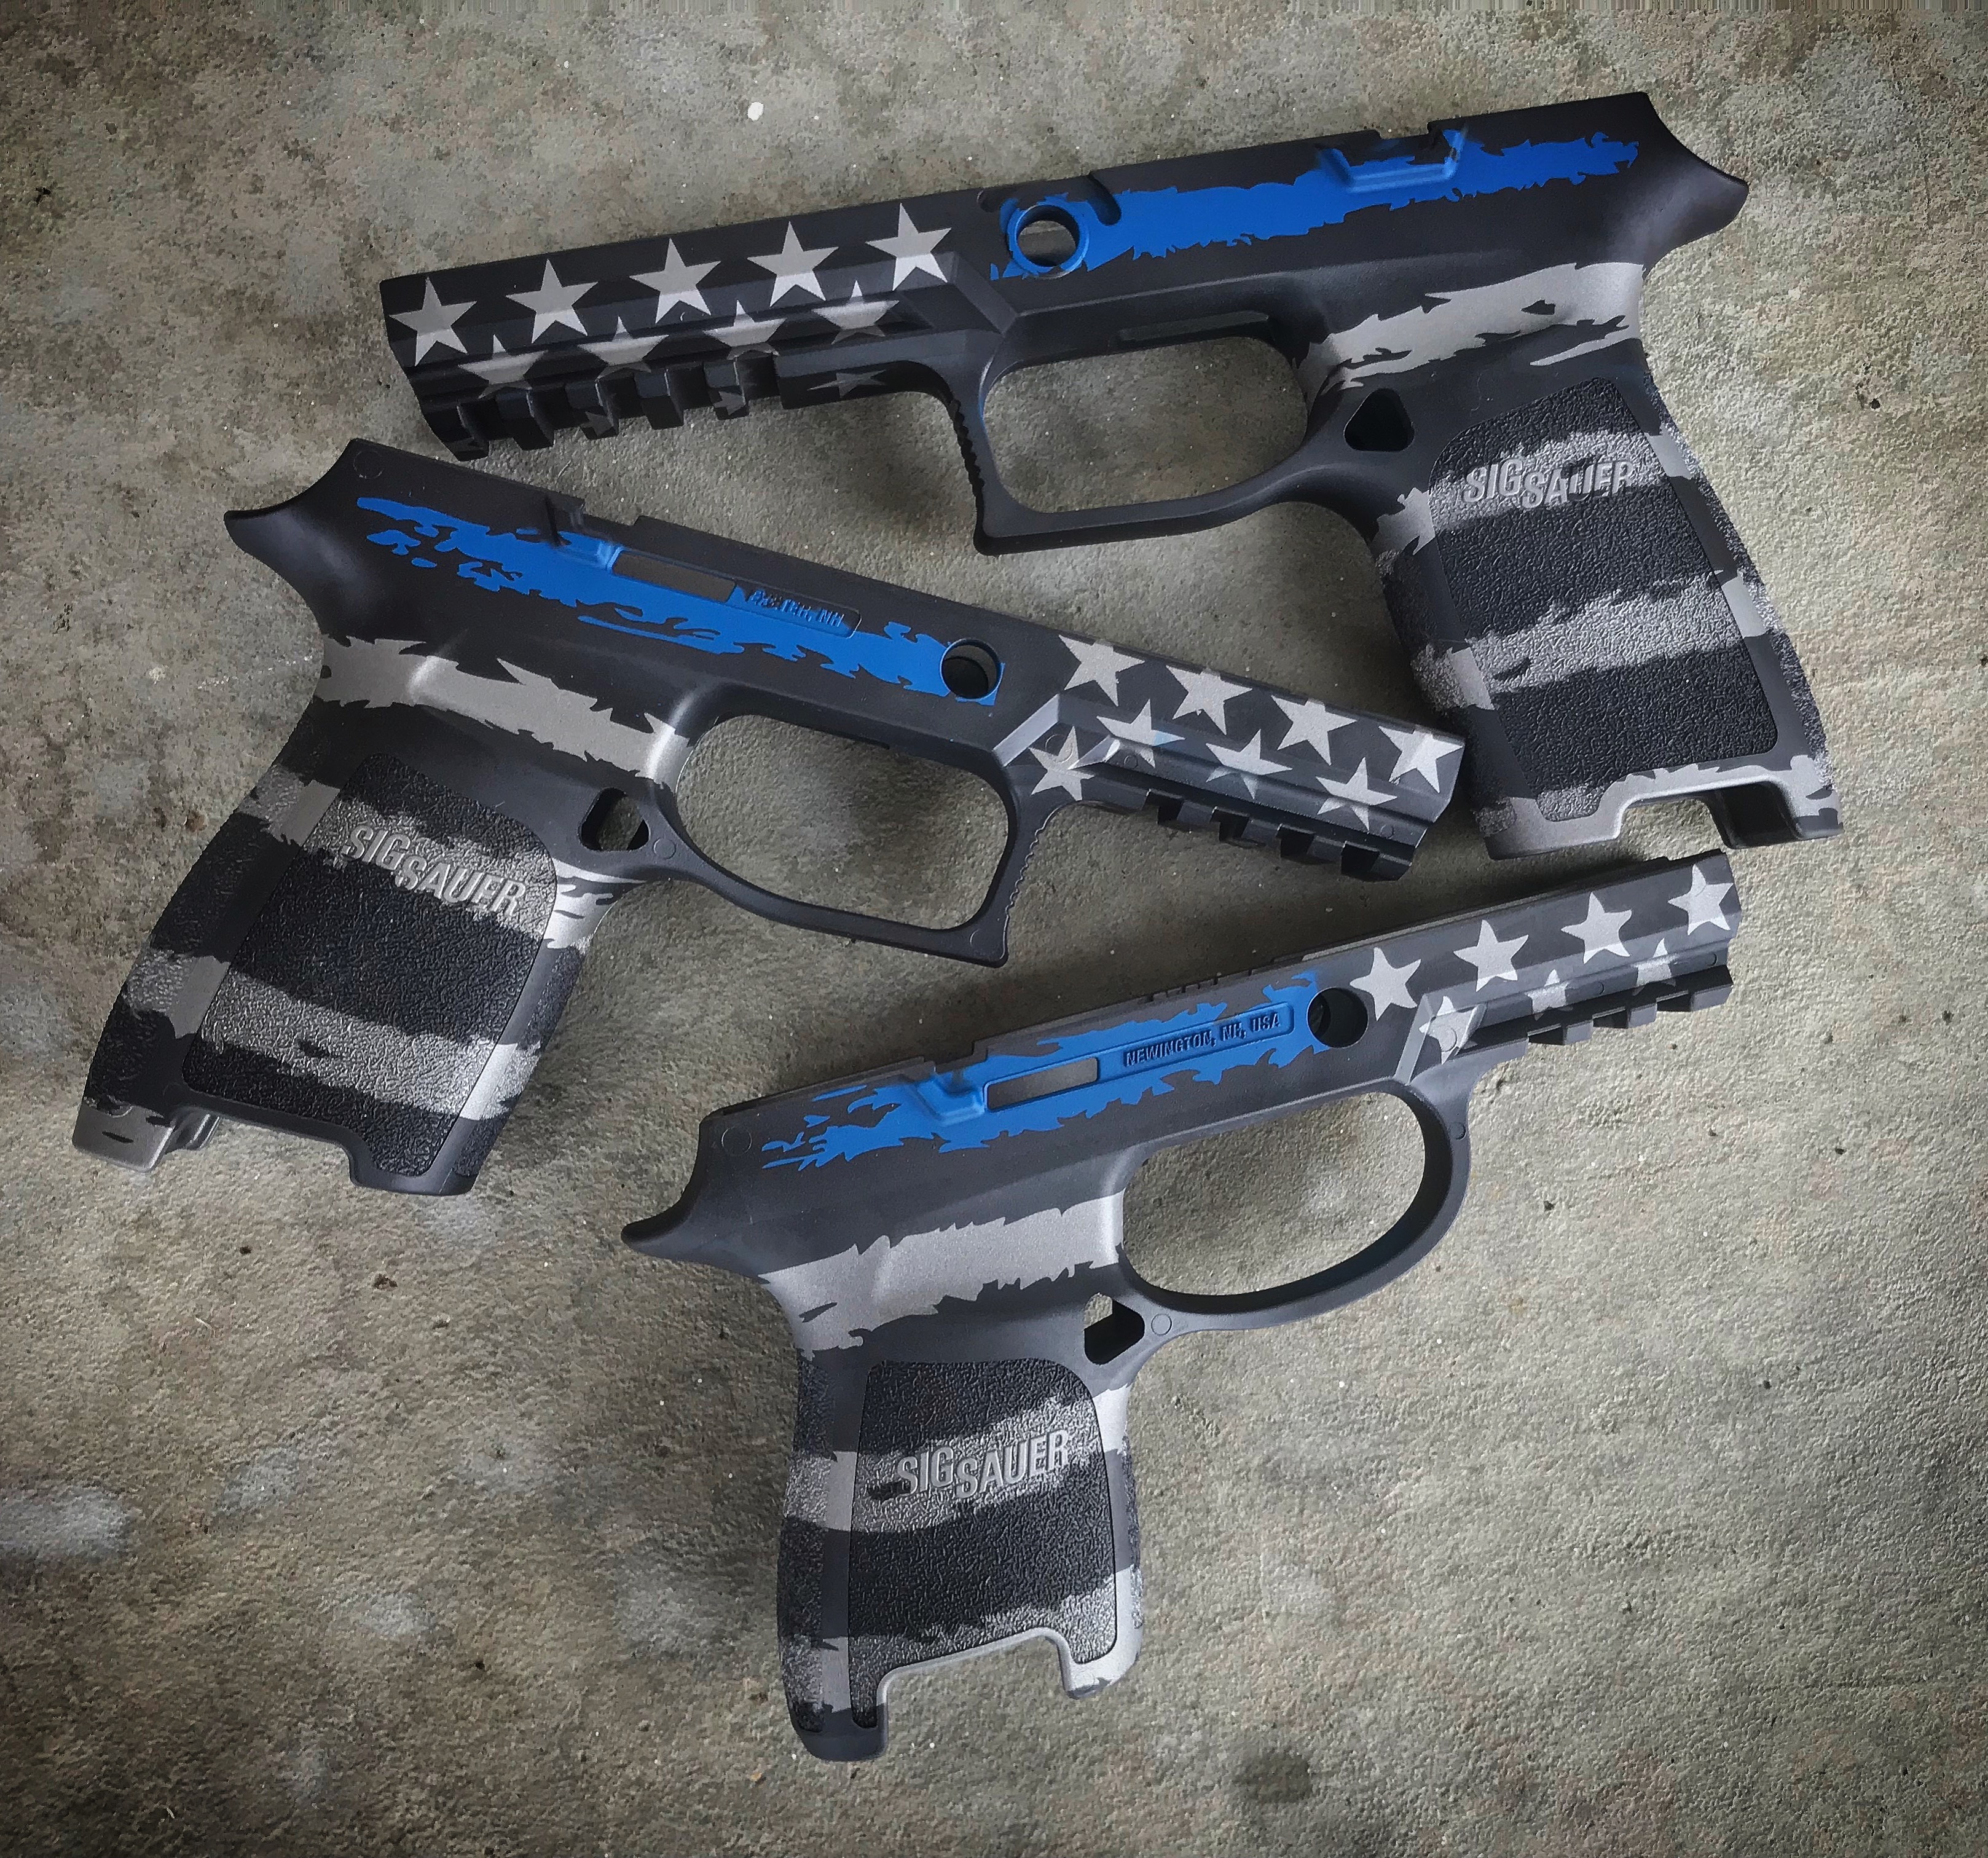 313 Tactical, LLC- Premier CeraKote Applicator, Firearms +